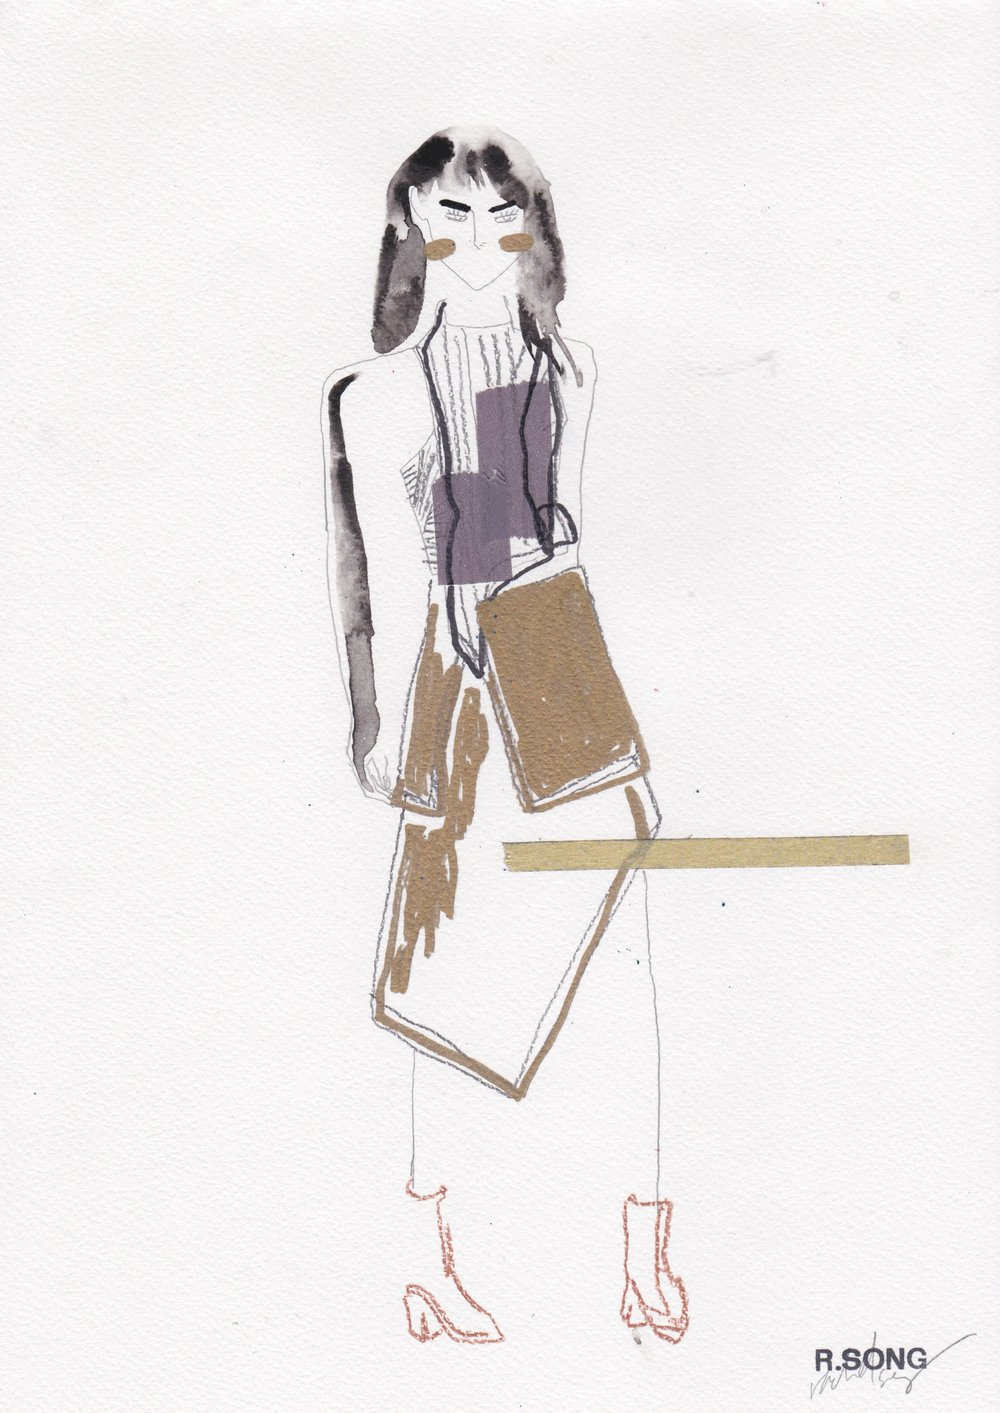 Eckhaus Latta F/W RTW 2016 Indian Ink, Graphite, Gold marker, Prismacolour pencils and Washi tape on Watercolour paper